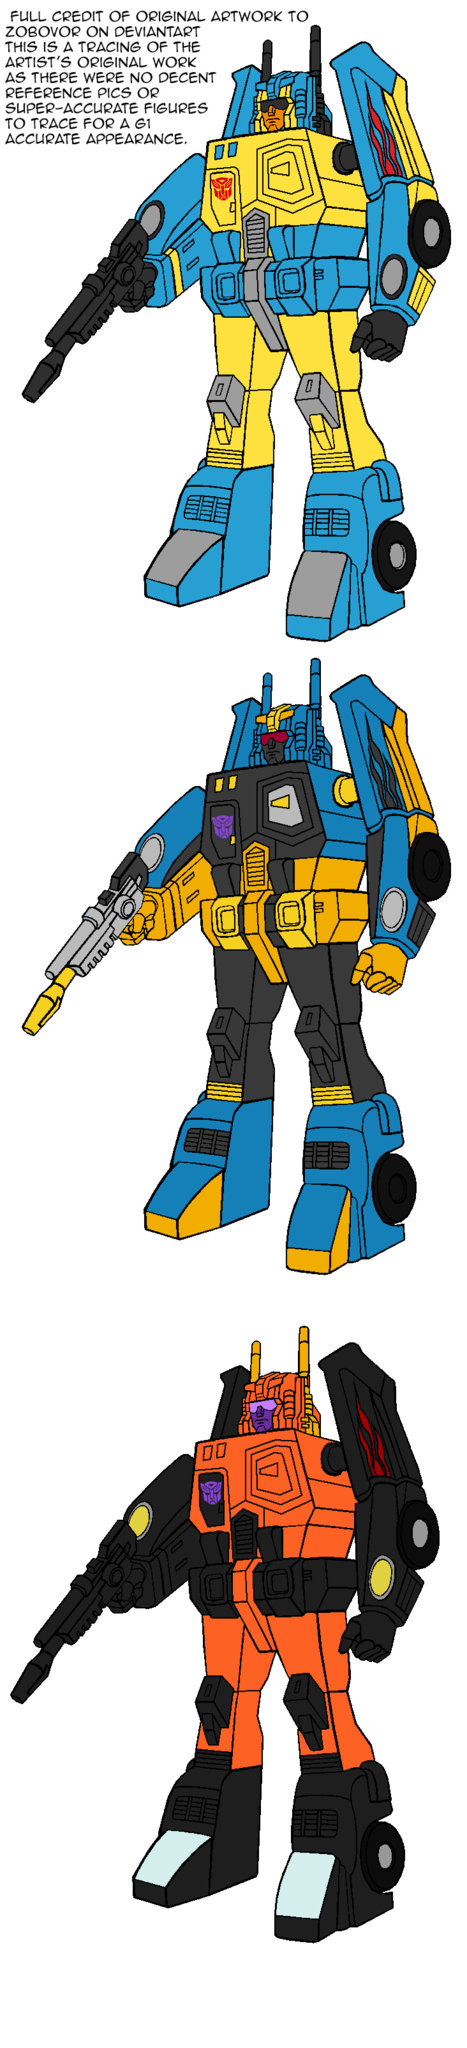 Nightbeat copy.jpg